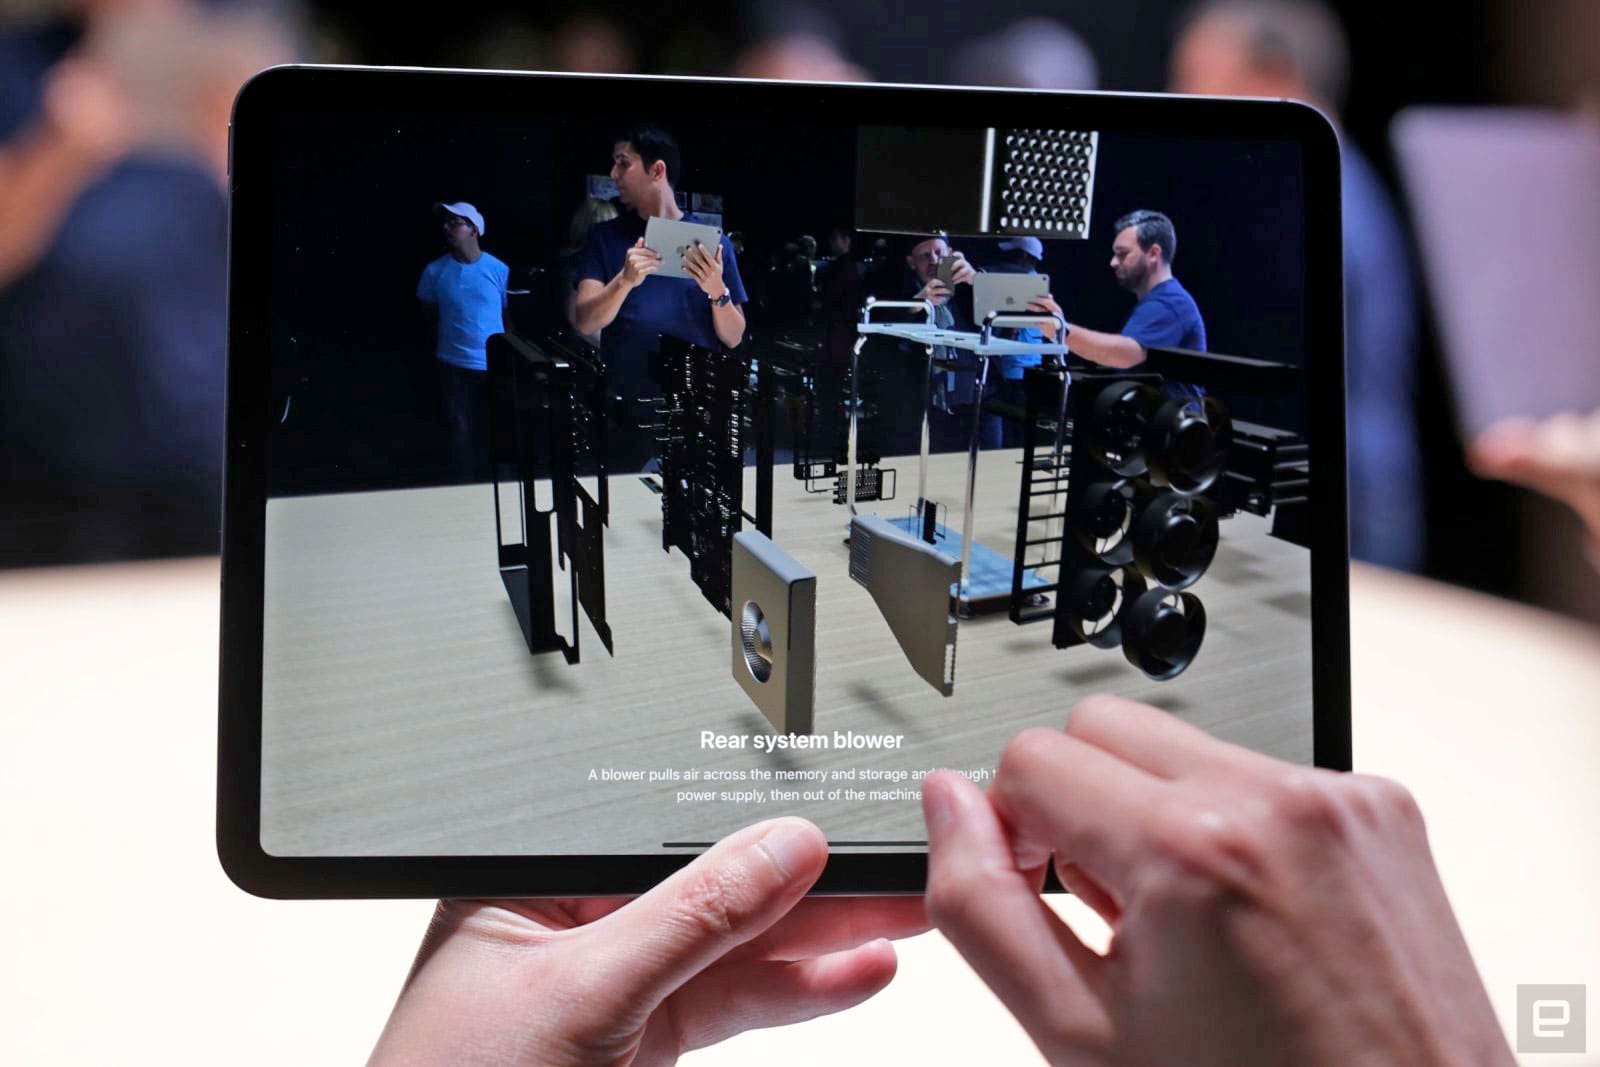 More signs point to Apple's AR headset arriving in 2020